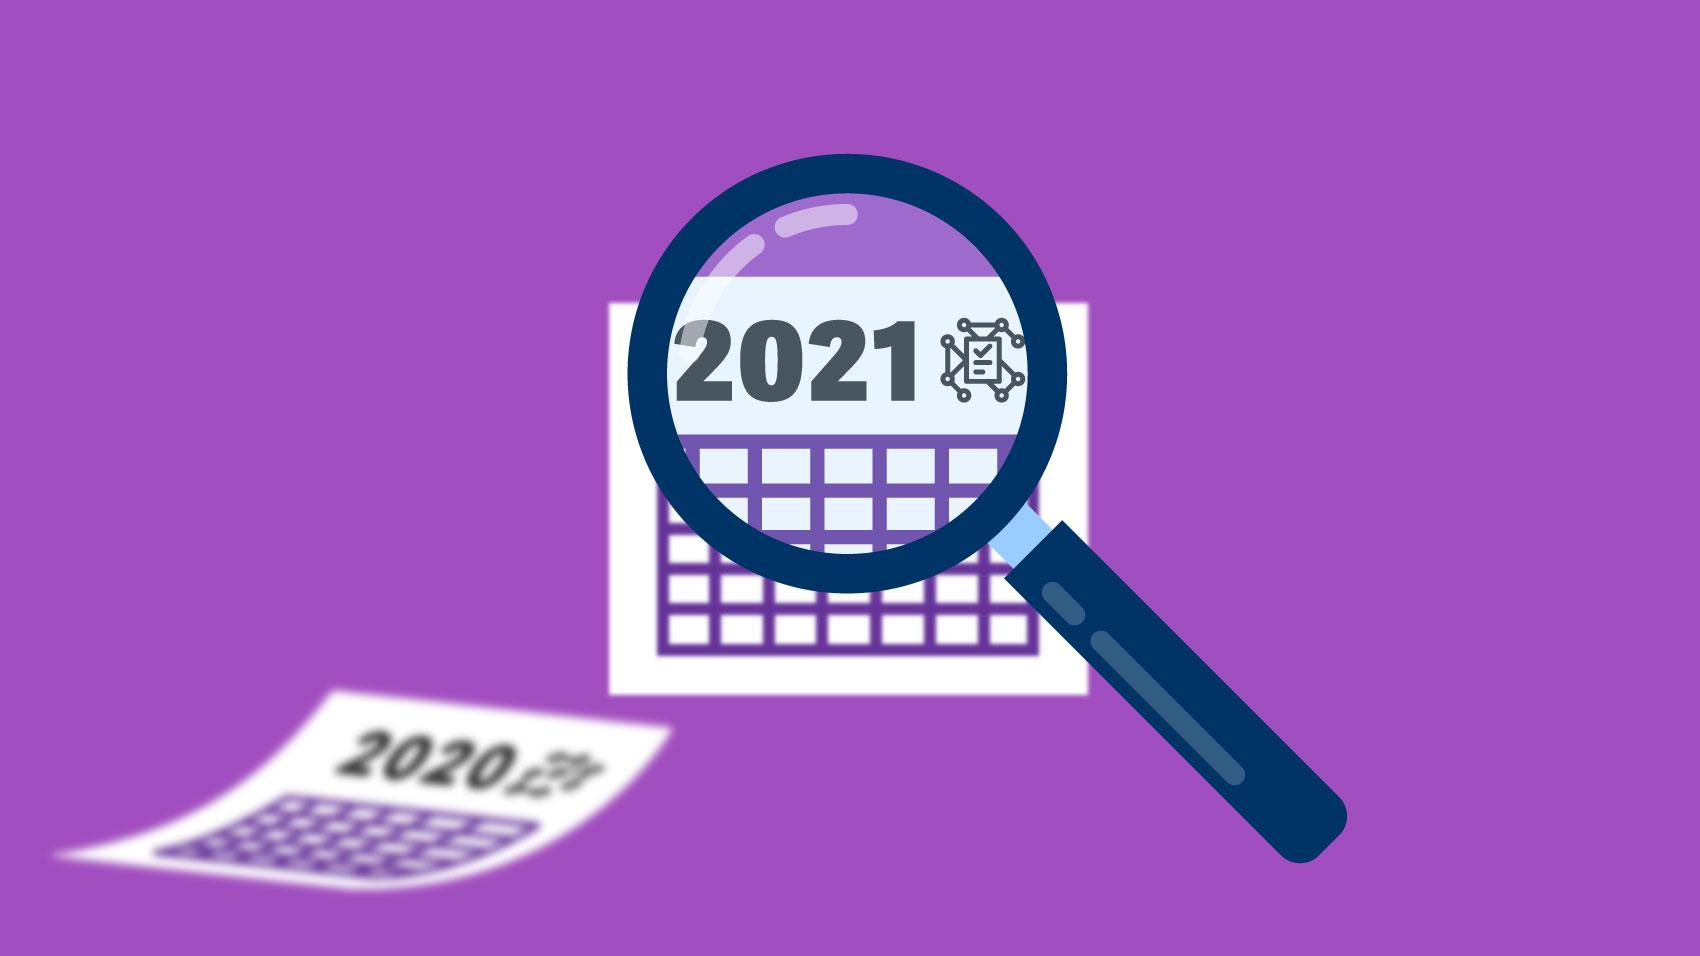 2020 calendar gives way to 2021 image